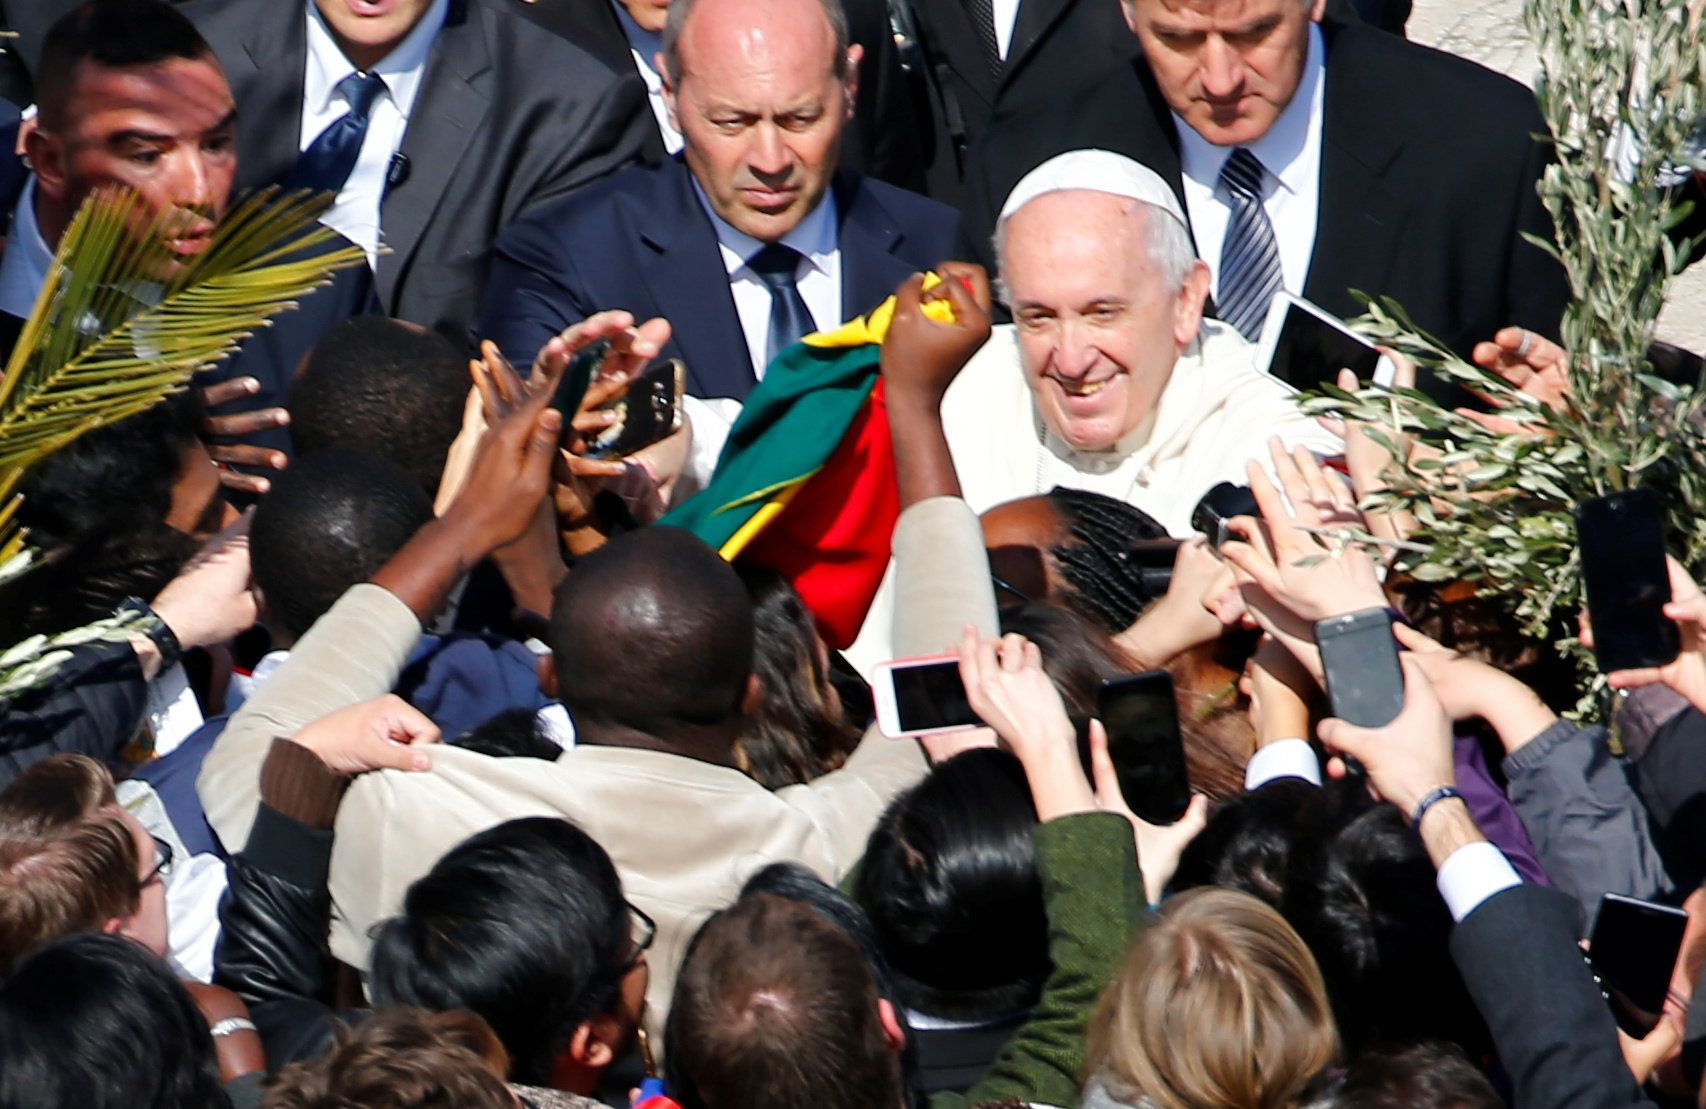 Pope Francis greets faithful after the Palm Sunday Mass in Saint Peter's Square at the Vatican, March 25, 2018.